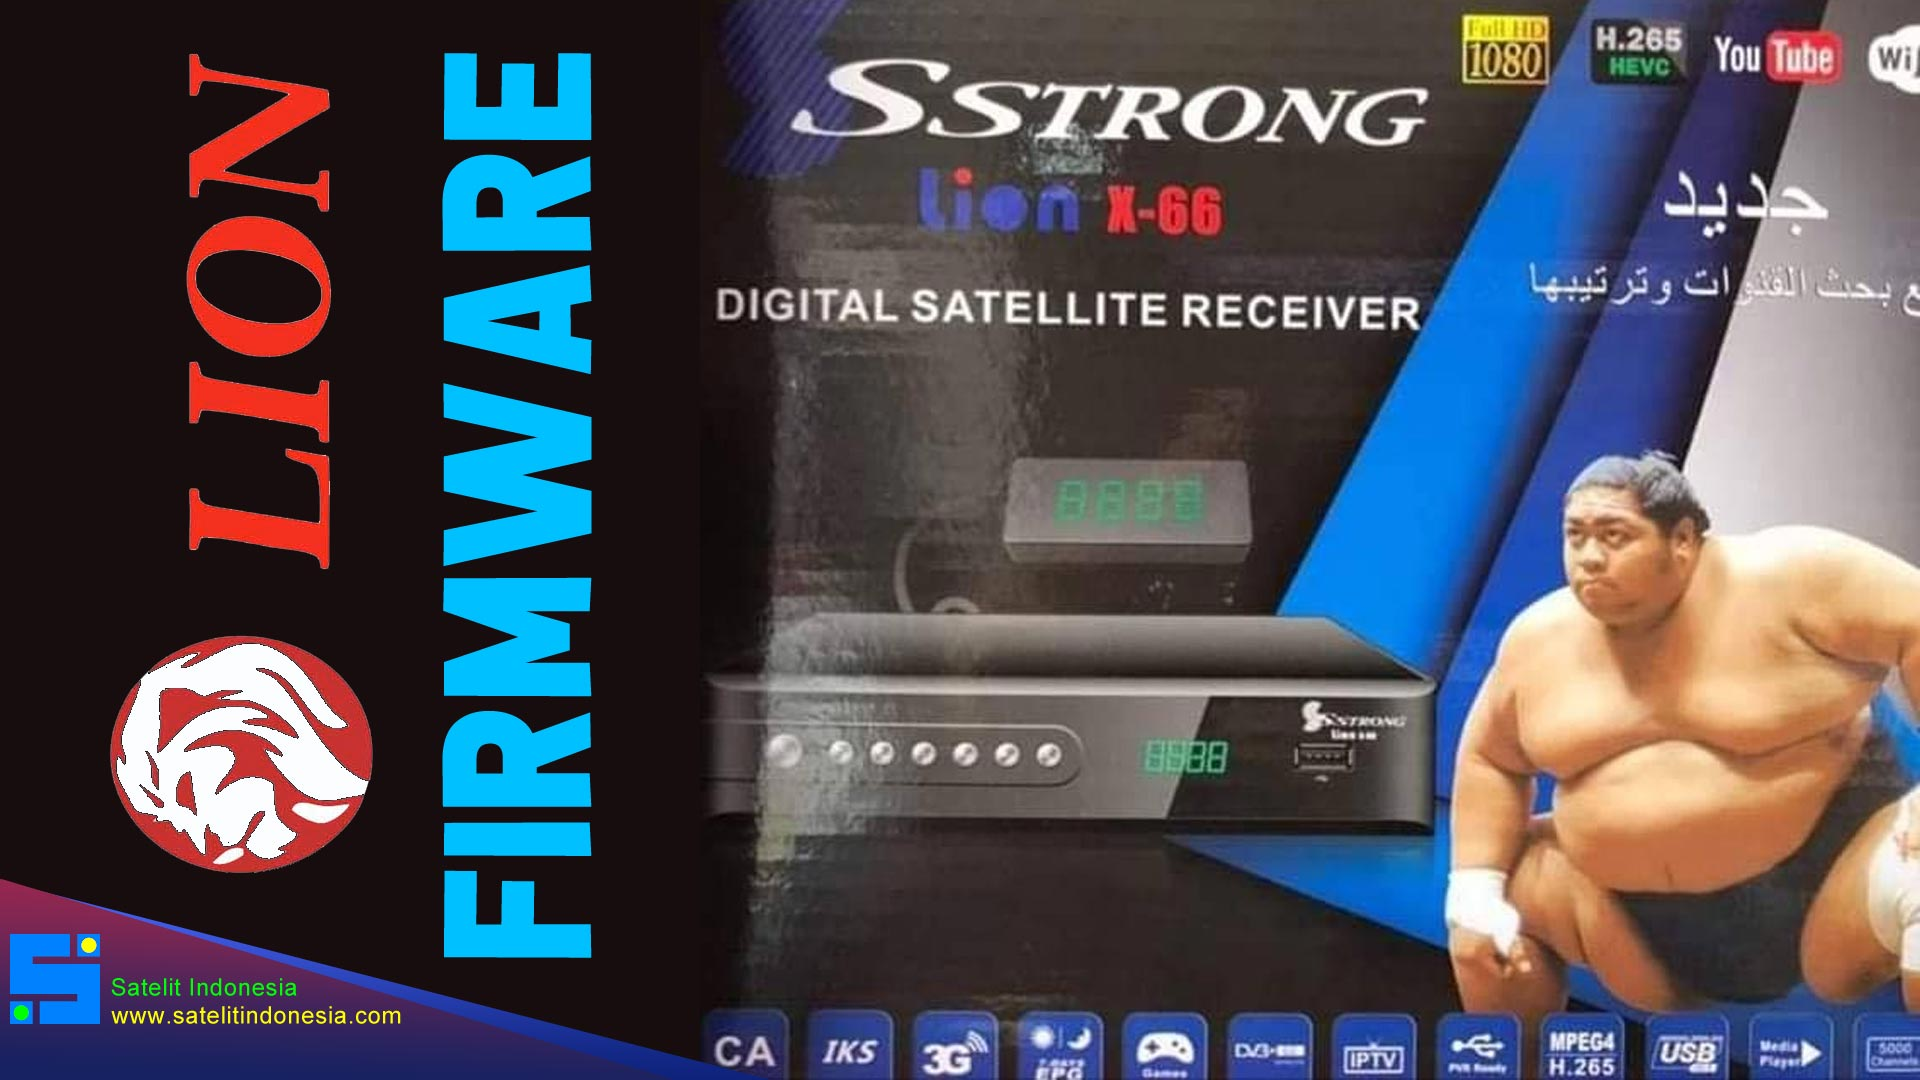 Download Software SStrong Lion X66 New Update Firmware Receiver